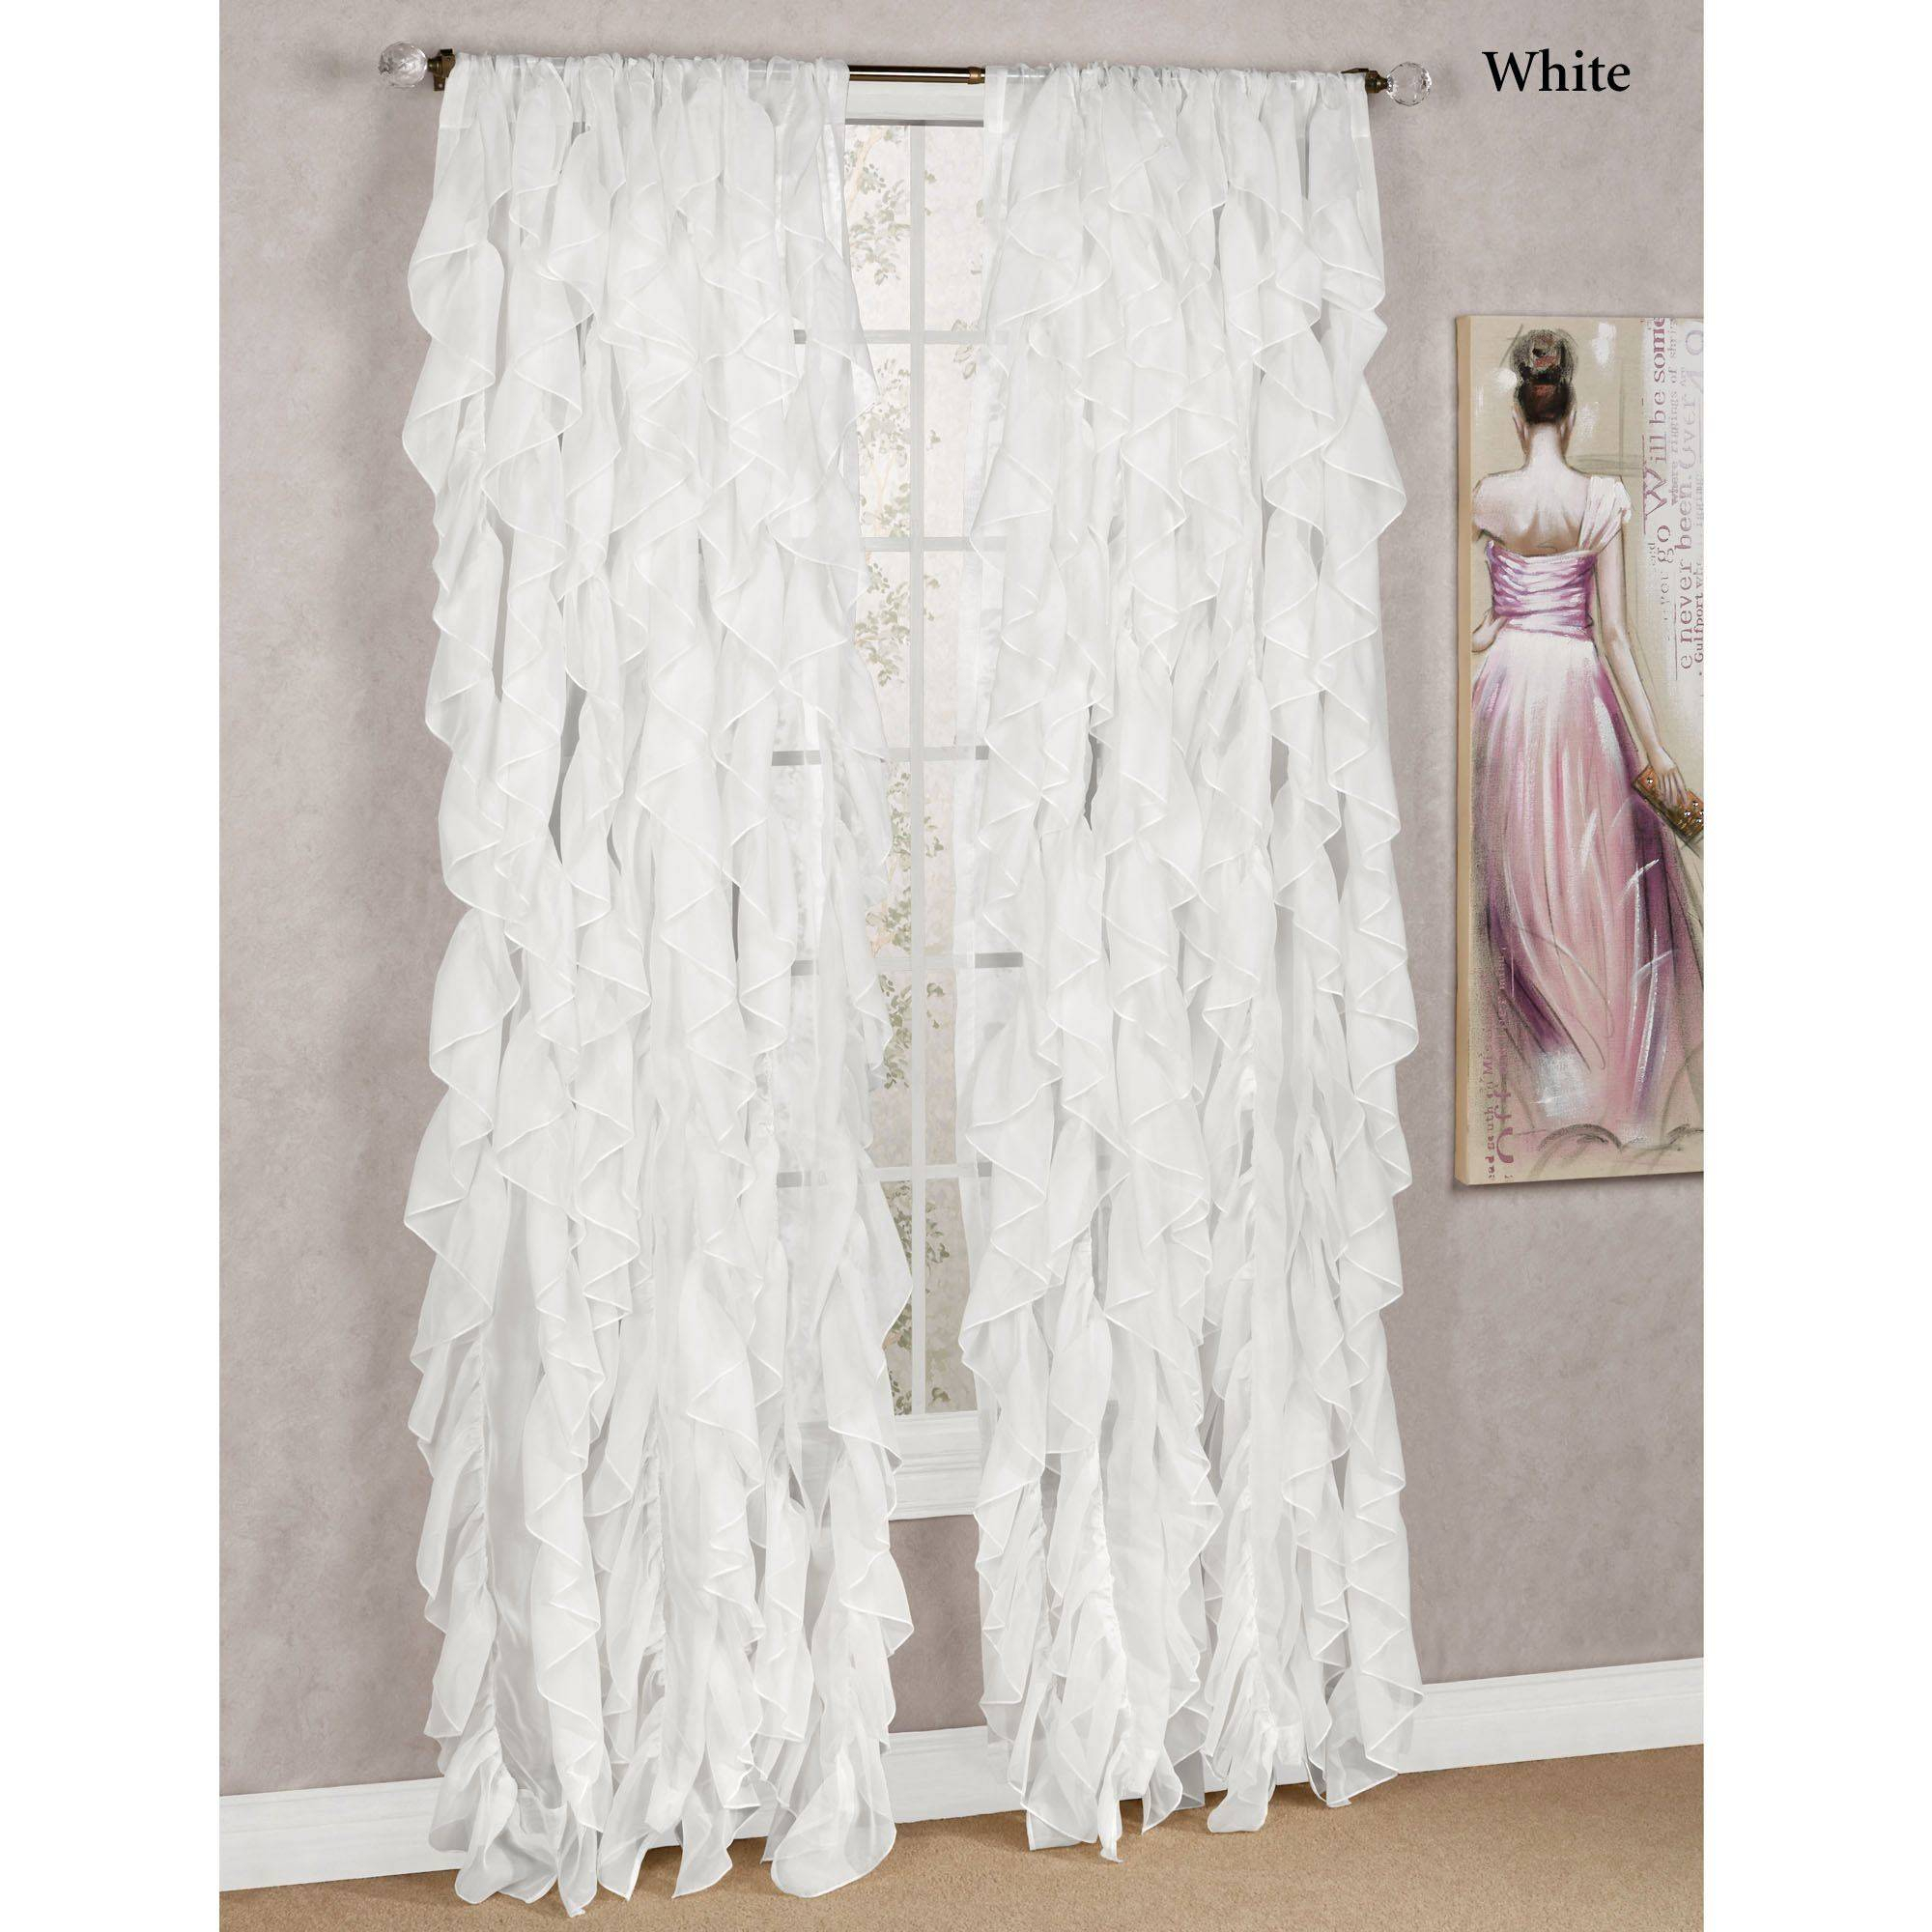 Wonderful Ruffled Window Curtains Piece Gypsy Shabby Chic Throughout Elegant Crushed Voile Ruffle Window Curtain Pieces (View 11 of 20)